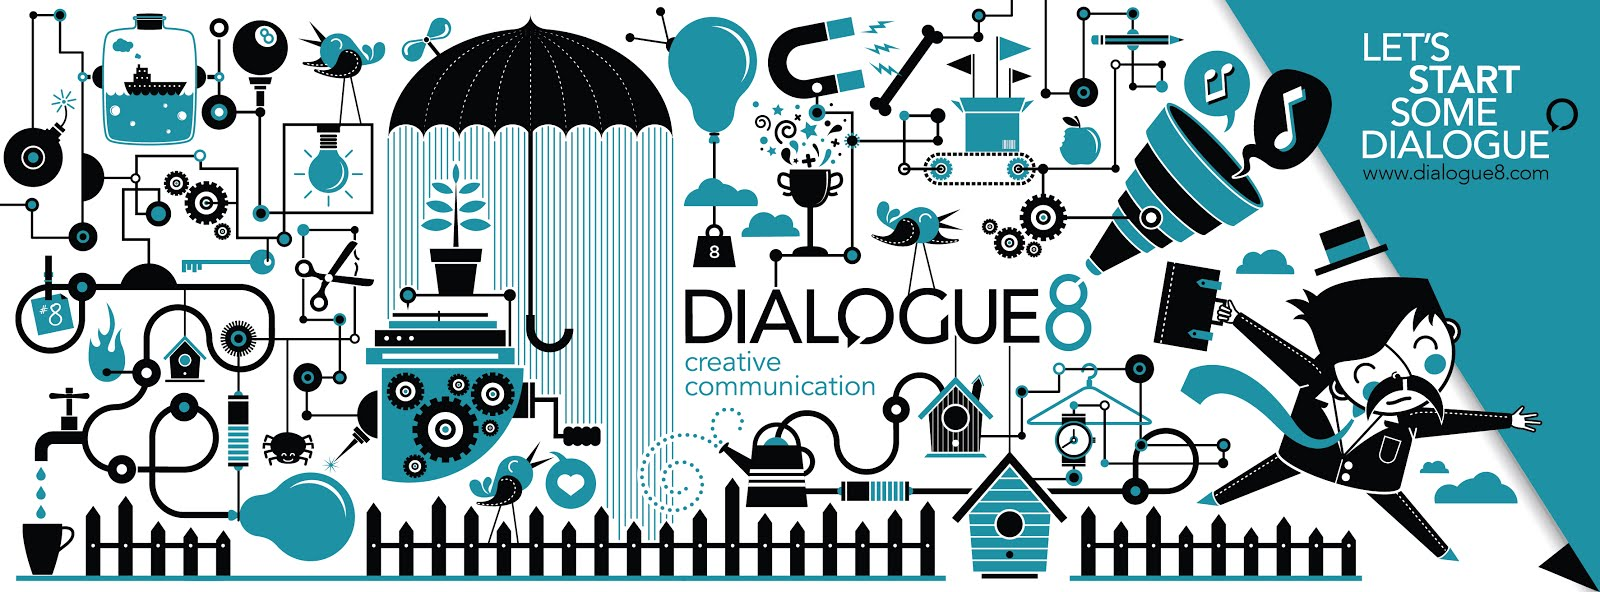 Dialogue8 Blog - by Dialogue8 Creative Communication